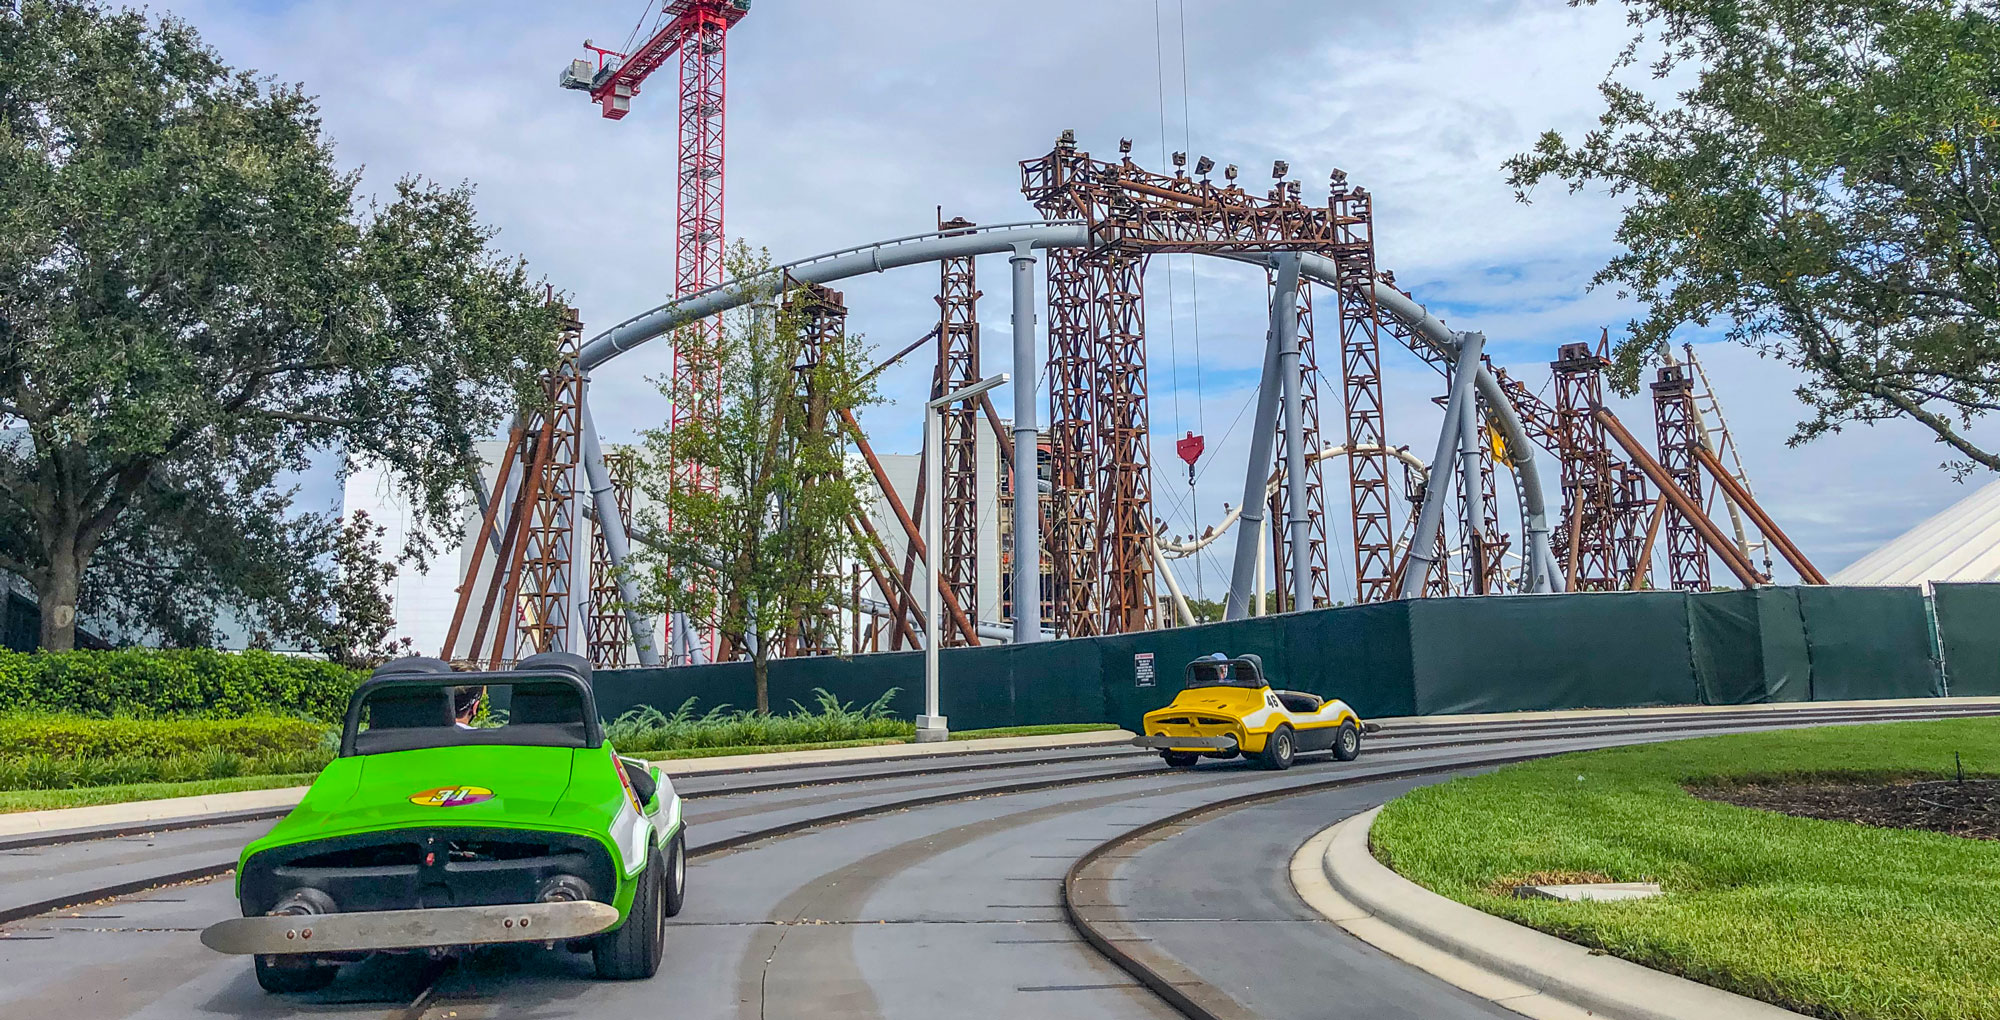 Tron Lightcycle / Run construction seen from Tomorrowland Speedway